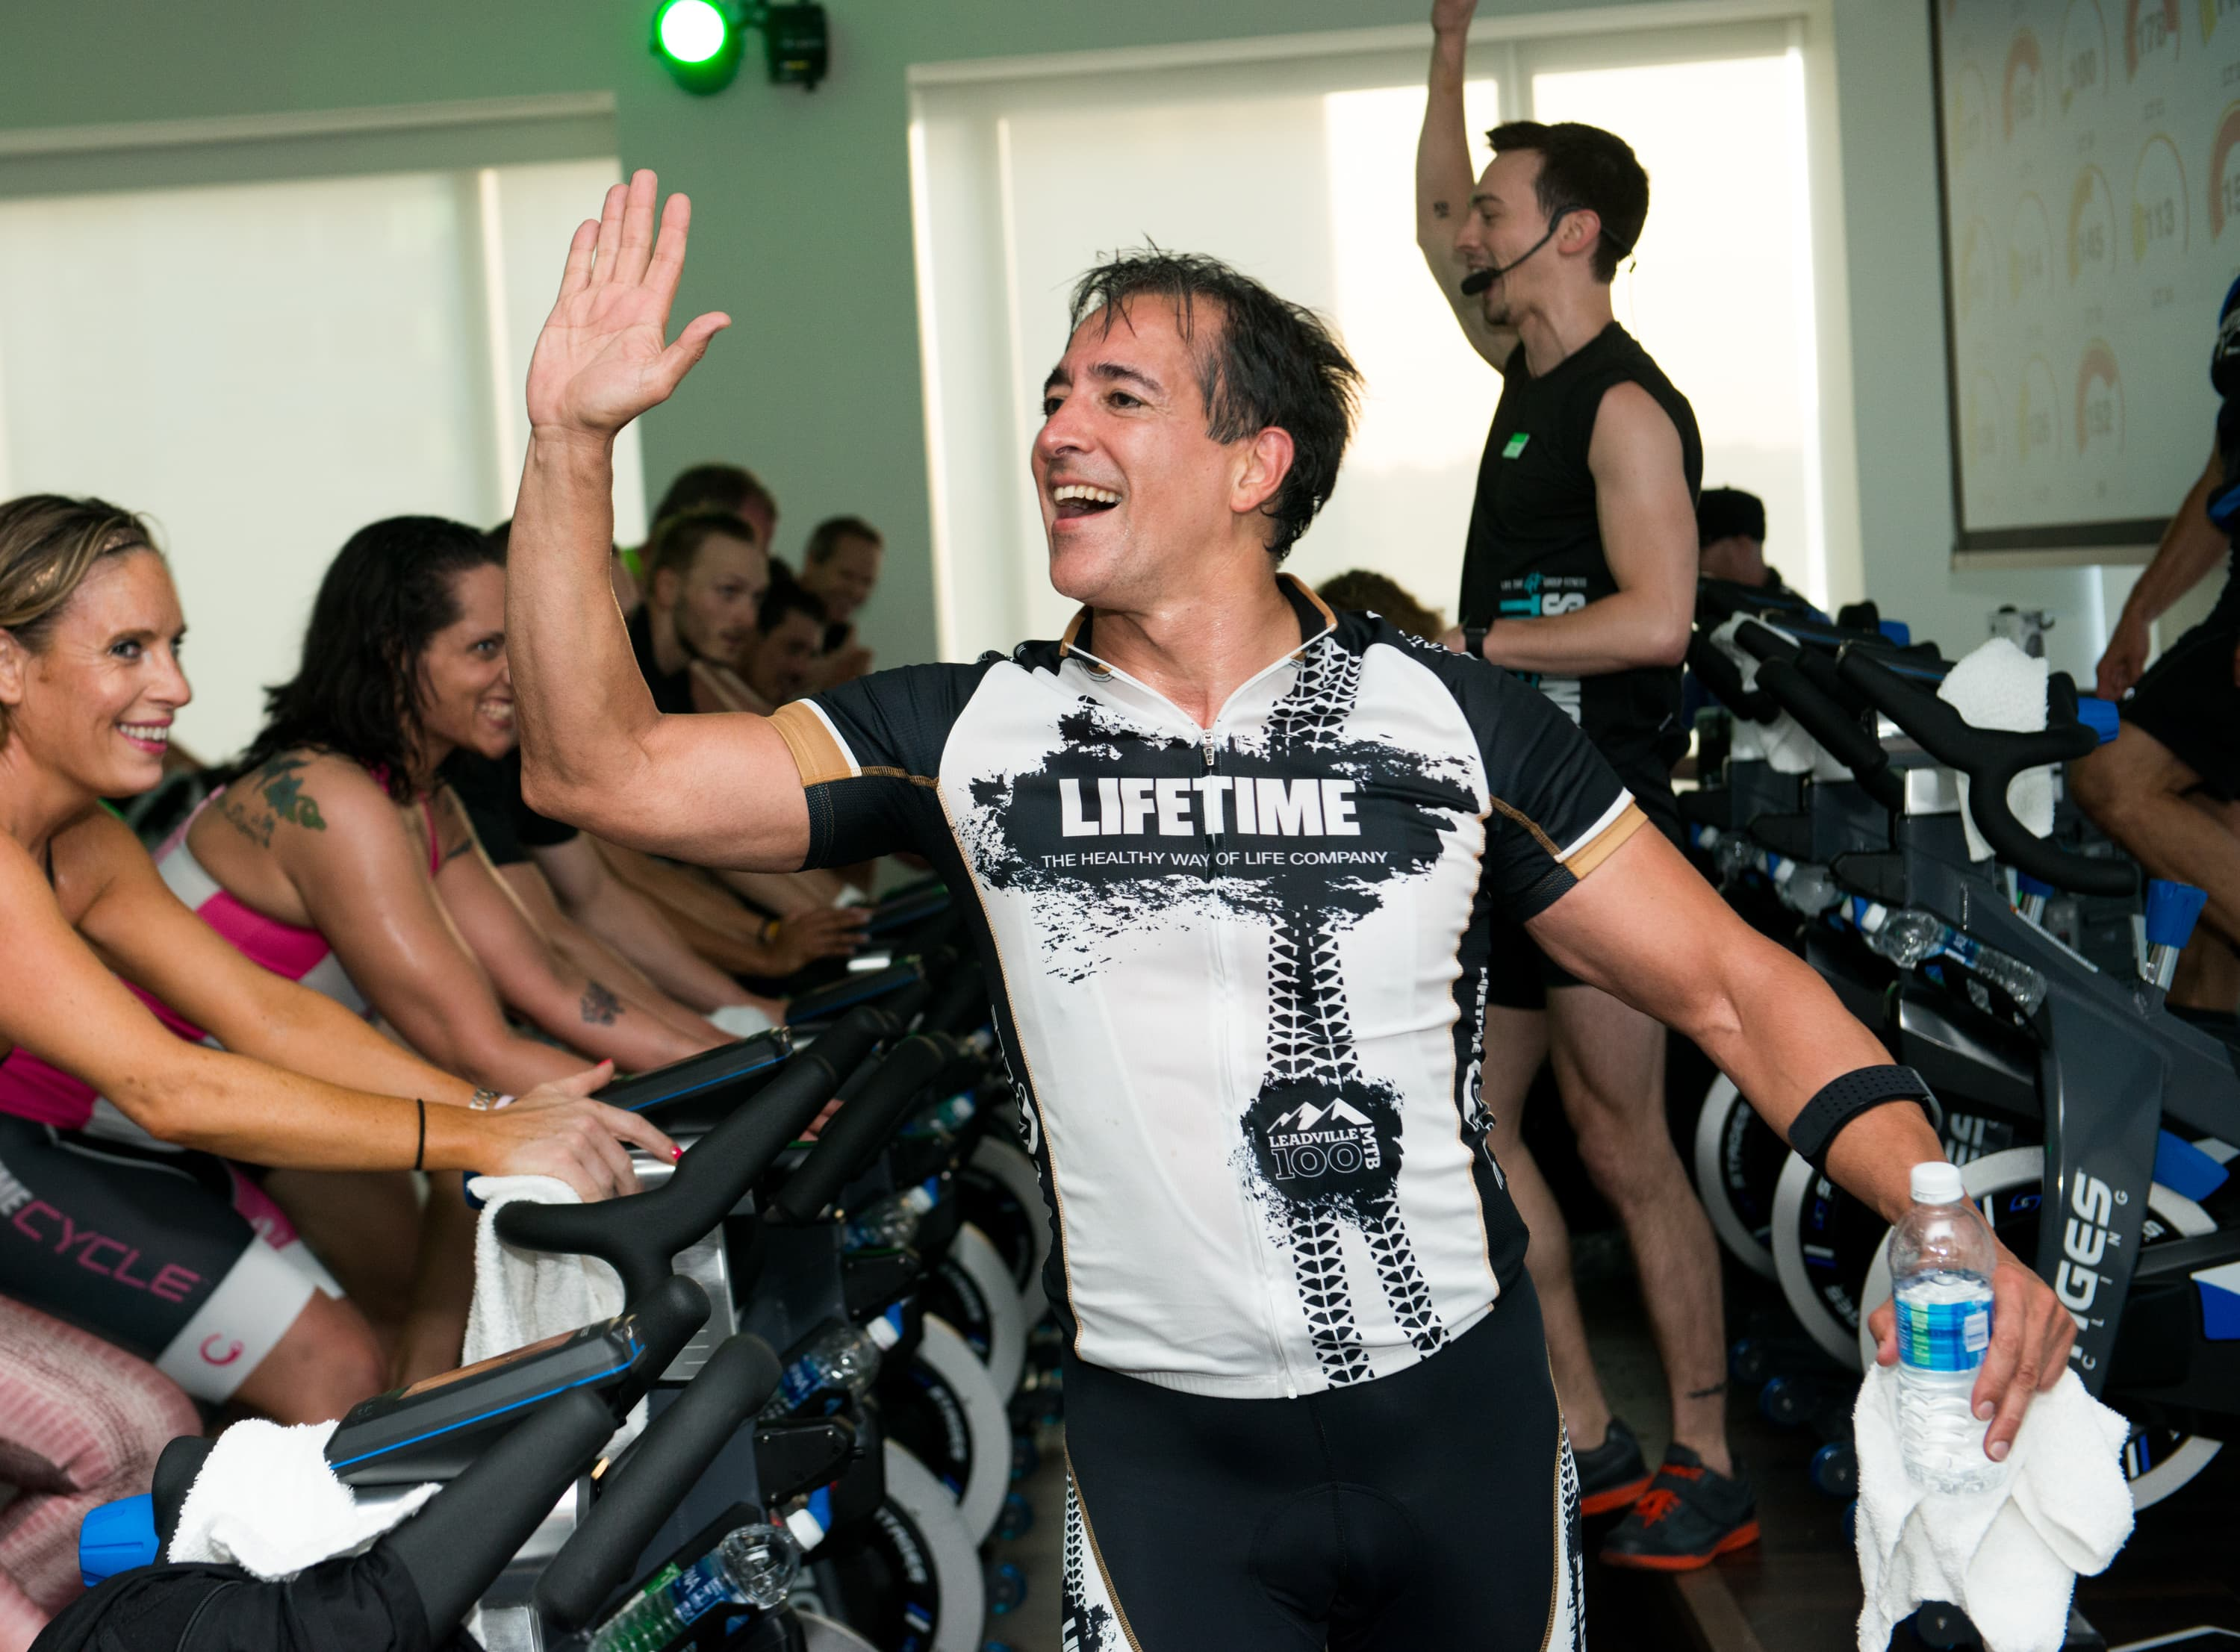 Life Time Fitness CEO says members are 'aching' to get back to the gym